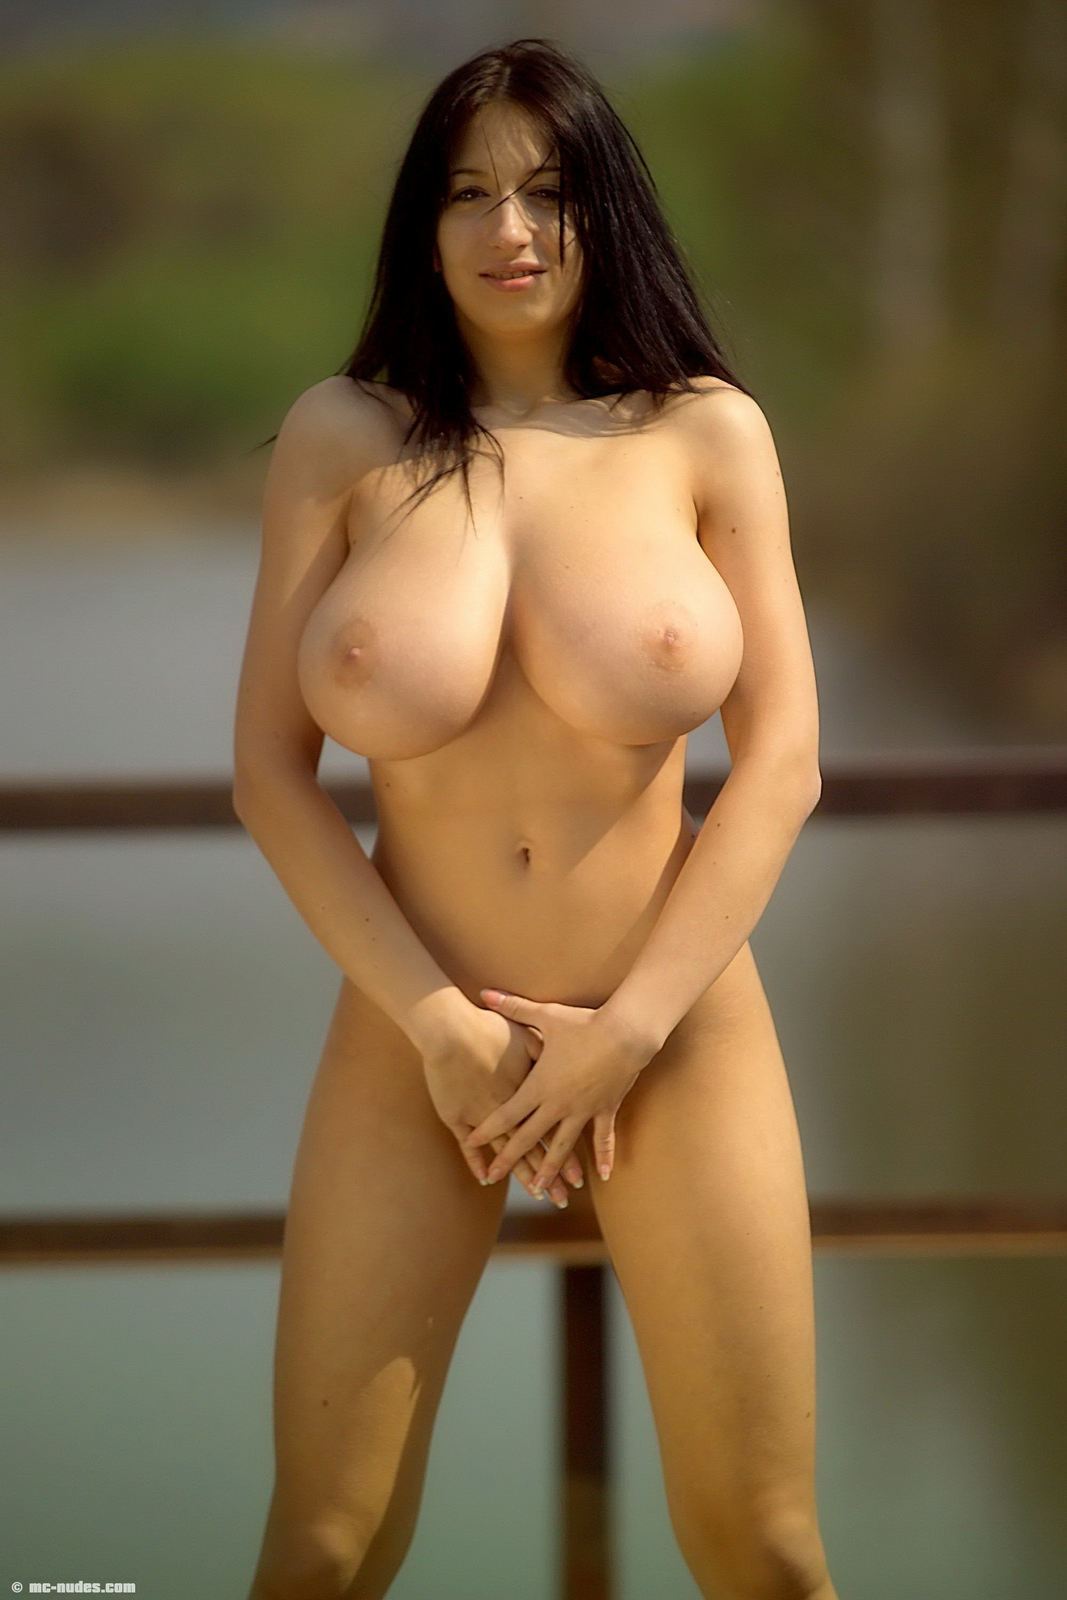 princessa-huge-tits-lake-brunette-naked-mcnudes-35